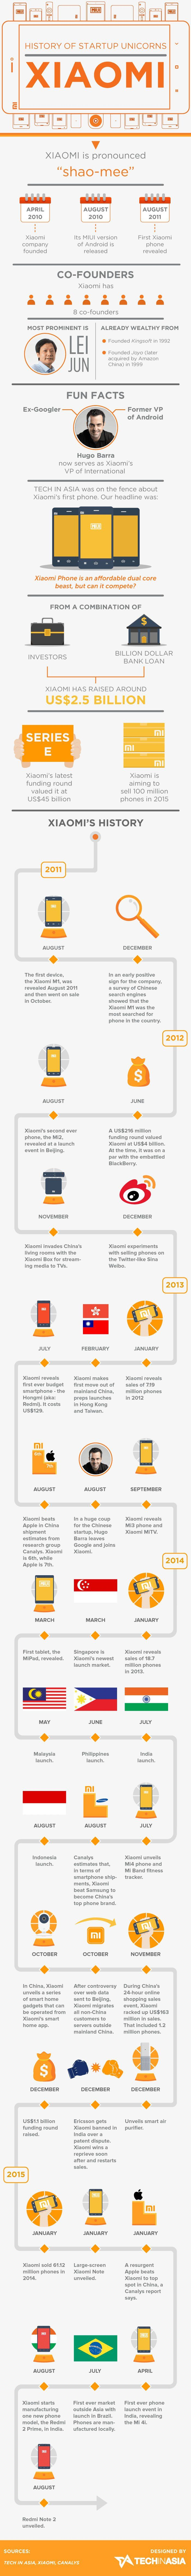 THE HISTORY OF XIAOMI